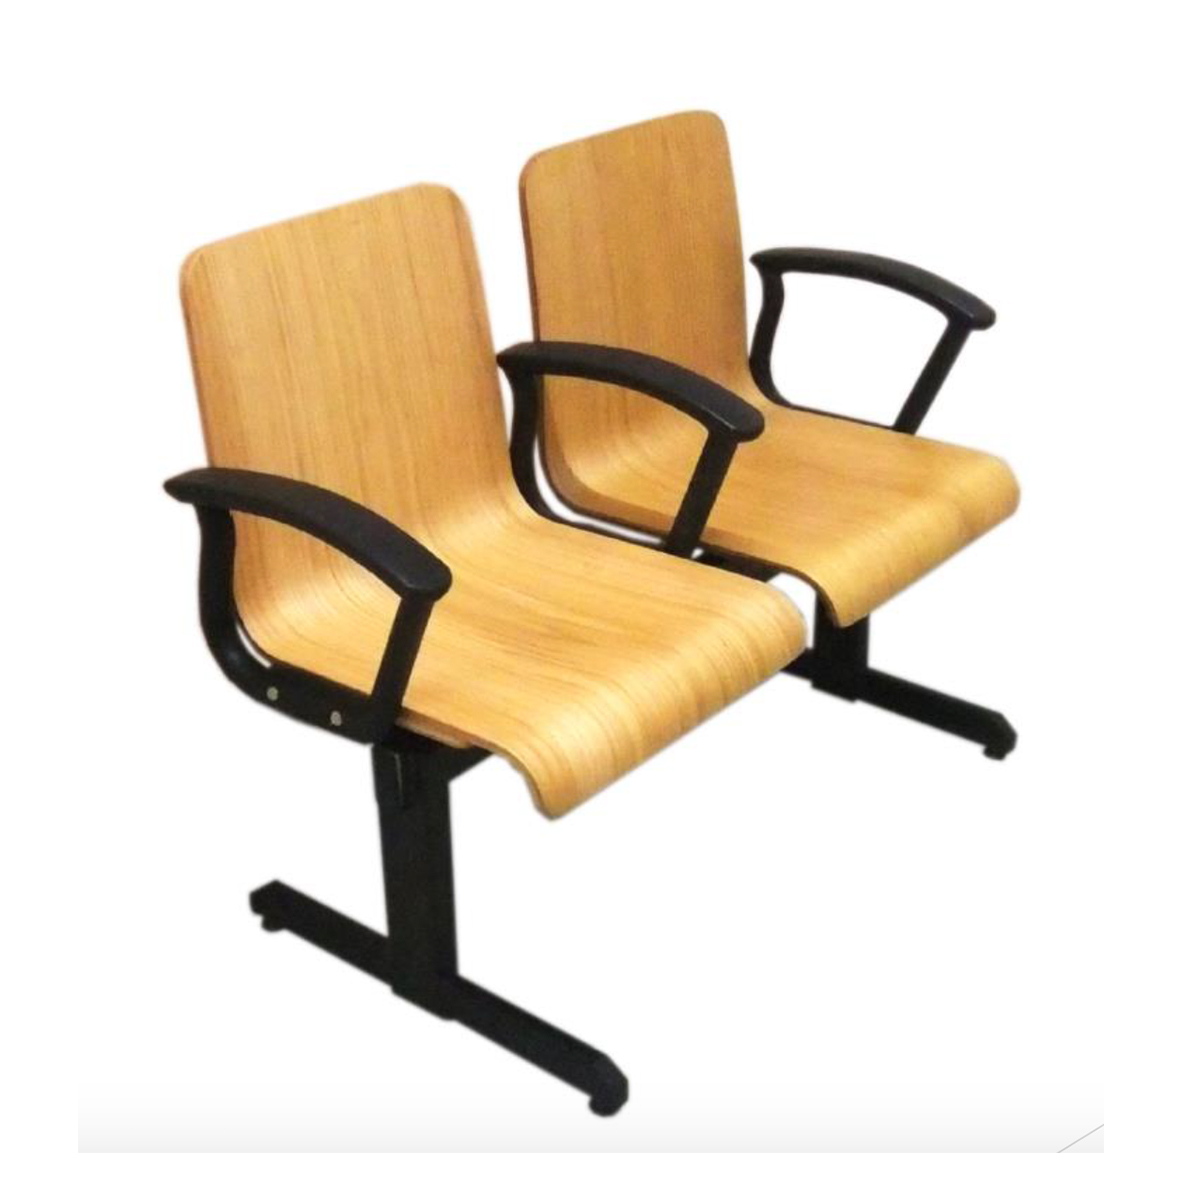 UPlan sento gang chair.jpg